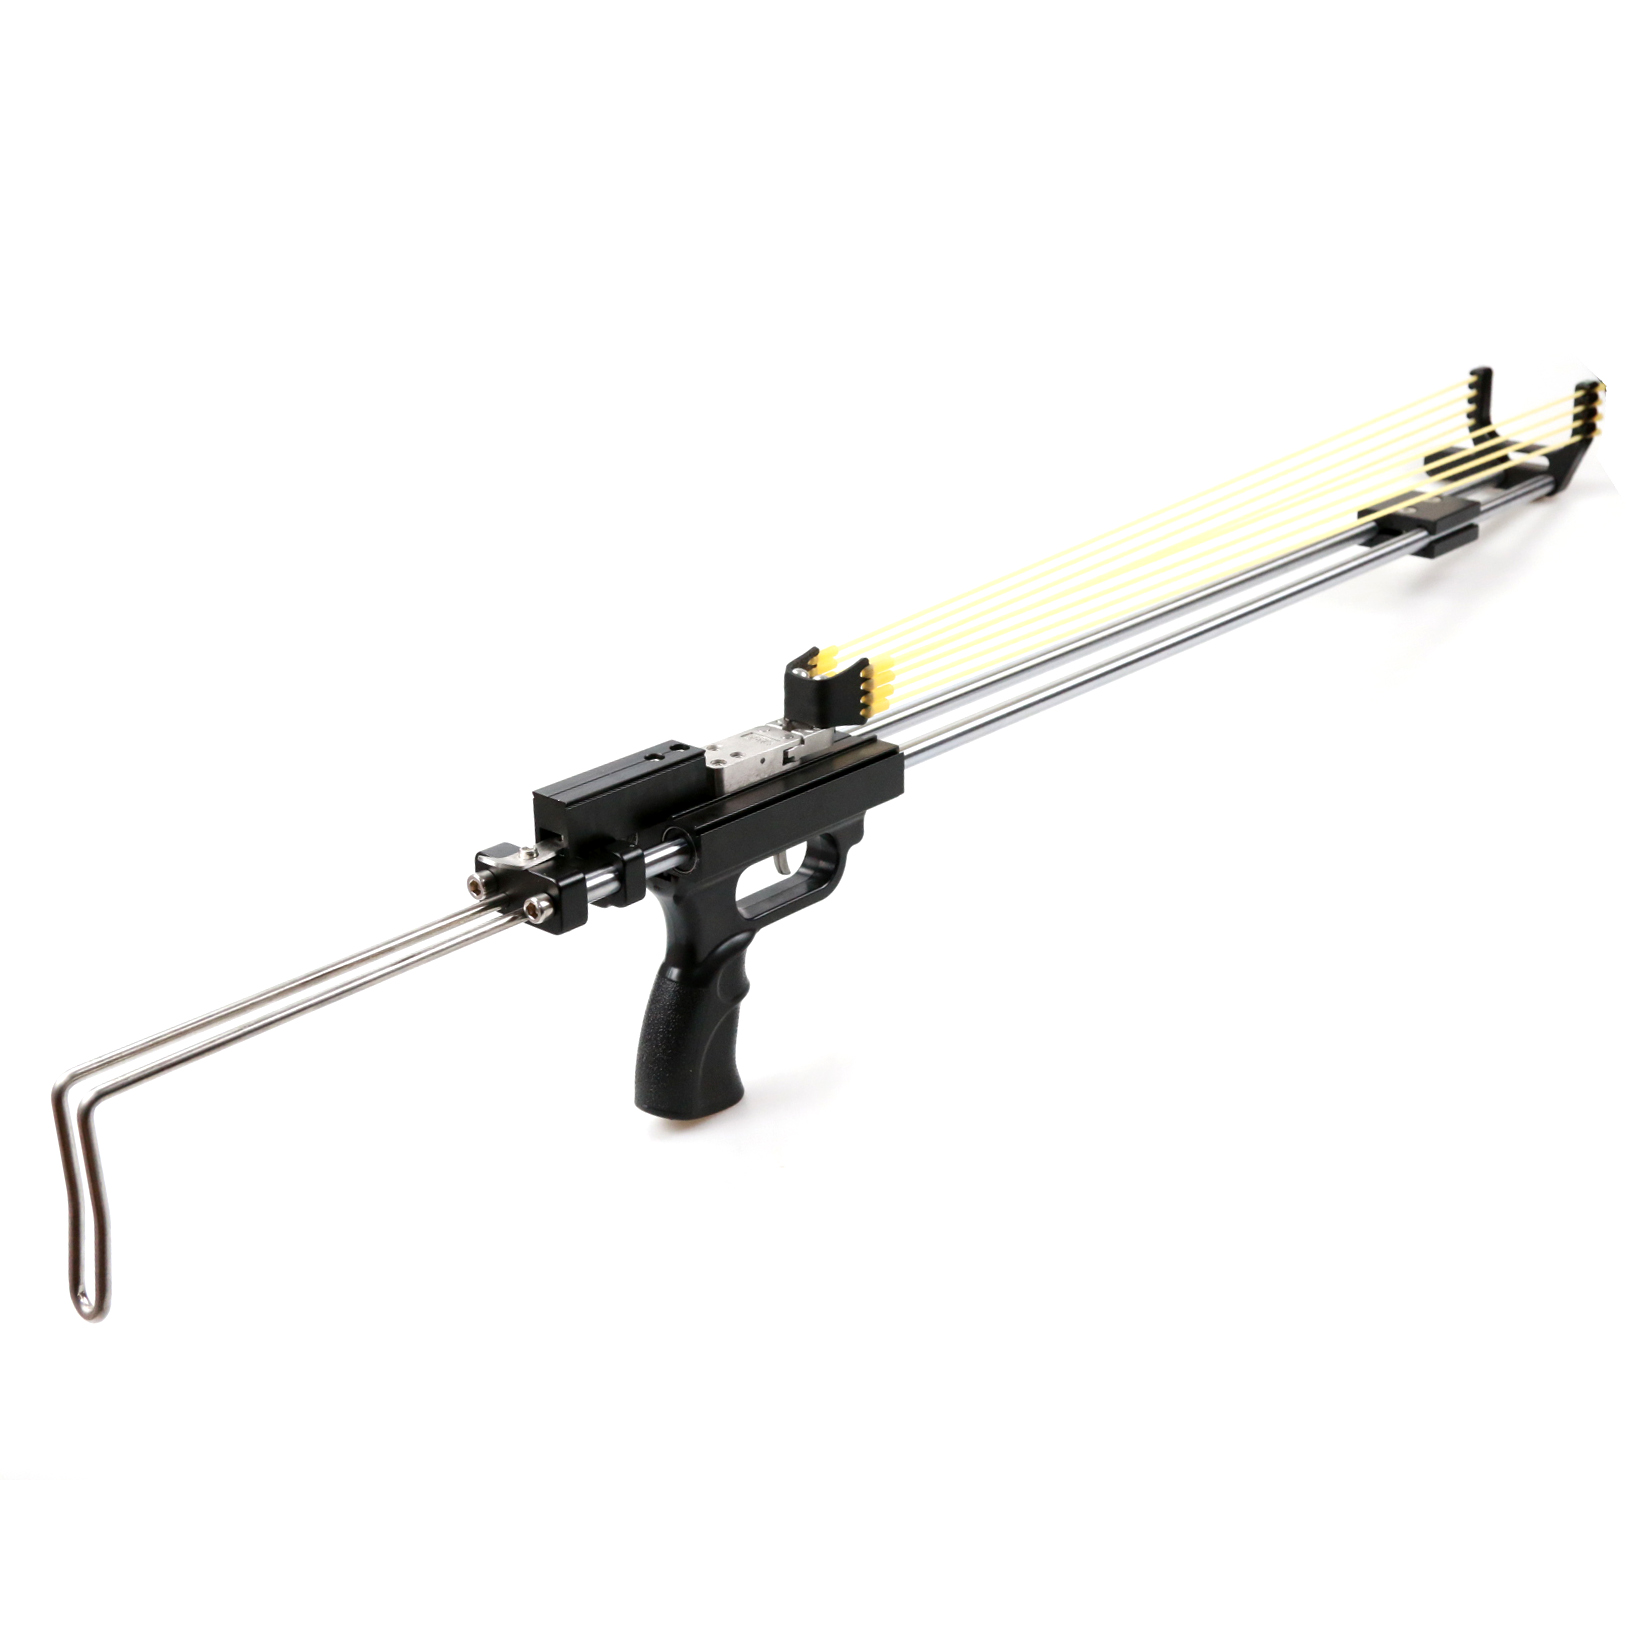 Wolf Smoothbore mechanical bow Slingshot Target shooting Gun Hunting Fising tools Long-range strike Catapult Bowsling Ammo ShotWolf Smoothbore mechanical bow Slingshot Target shooting Gun Hunting Fising tools Long-range strike Catapult Bowsling Ammo Shot